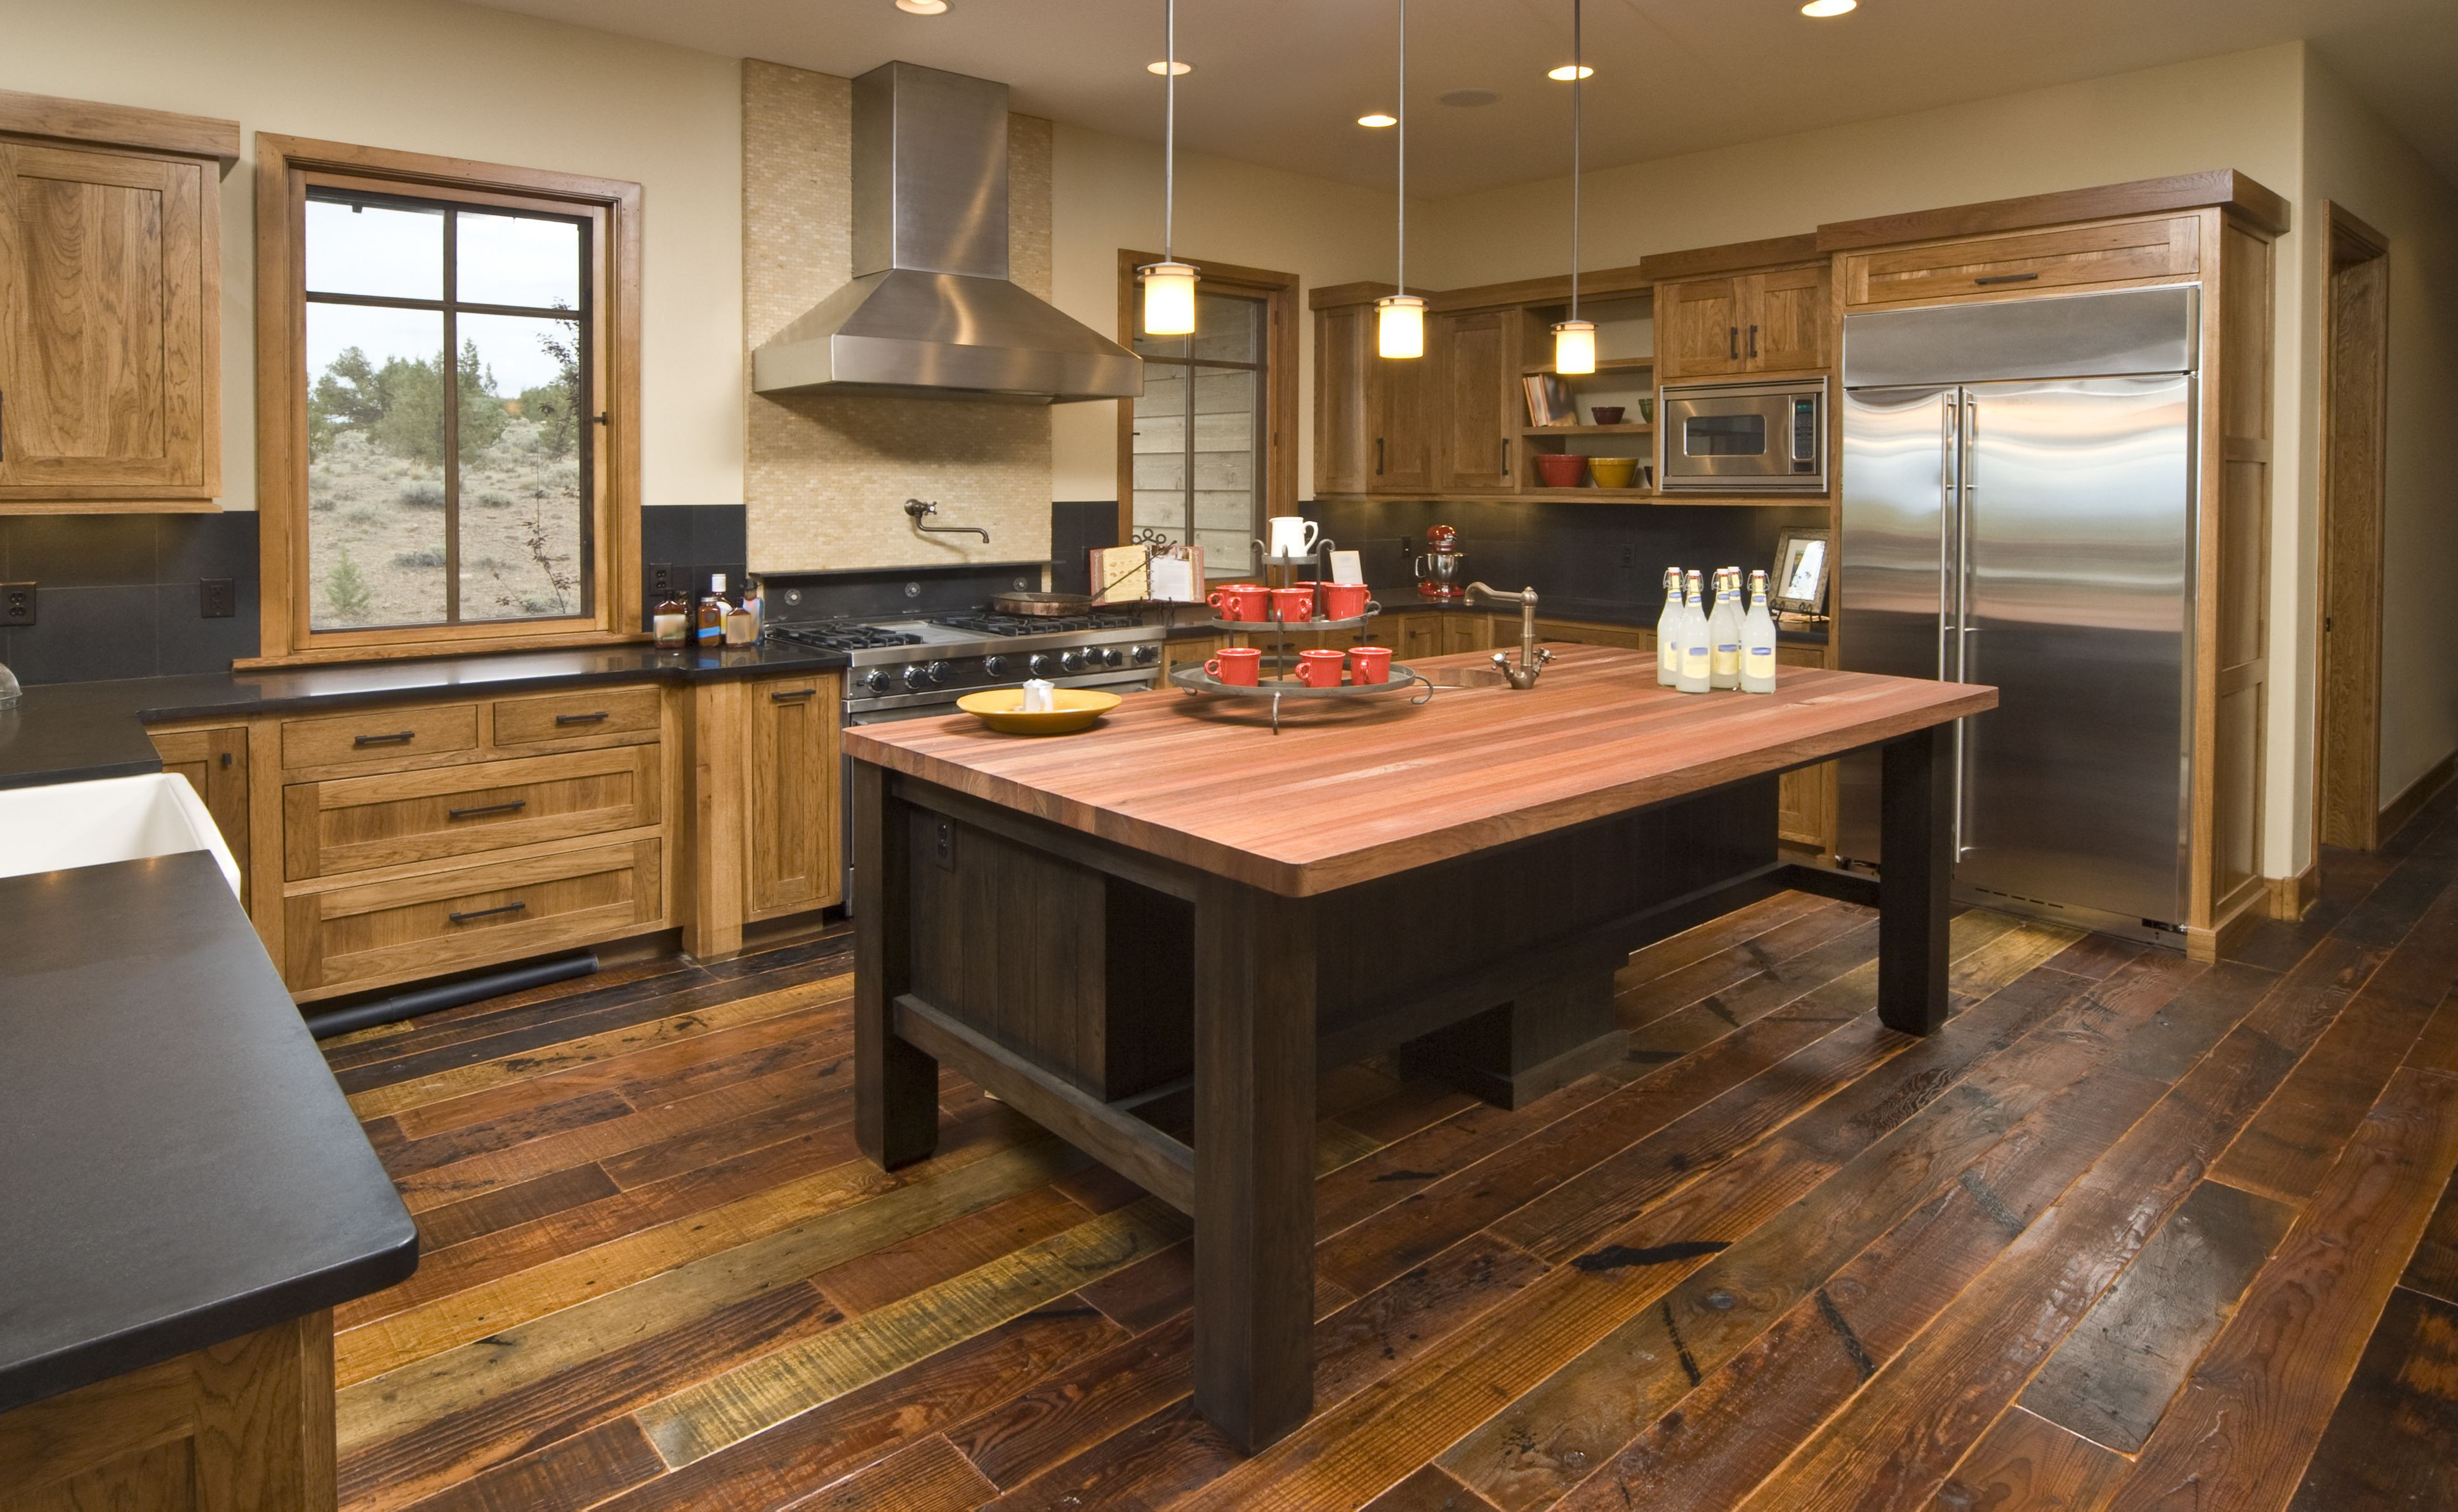 reclaimed hardwood flooring for sale of where to buy reclaimed wood flooring intended for rustic modern kitchen 157565456 58ae76a73df78c345ba2f5d1